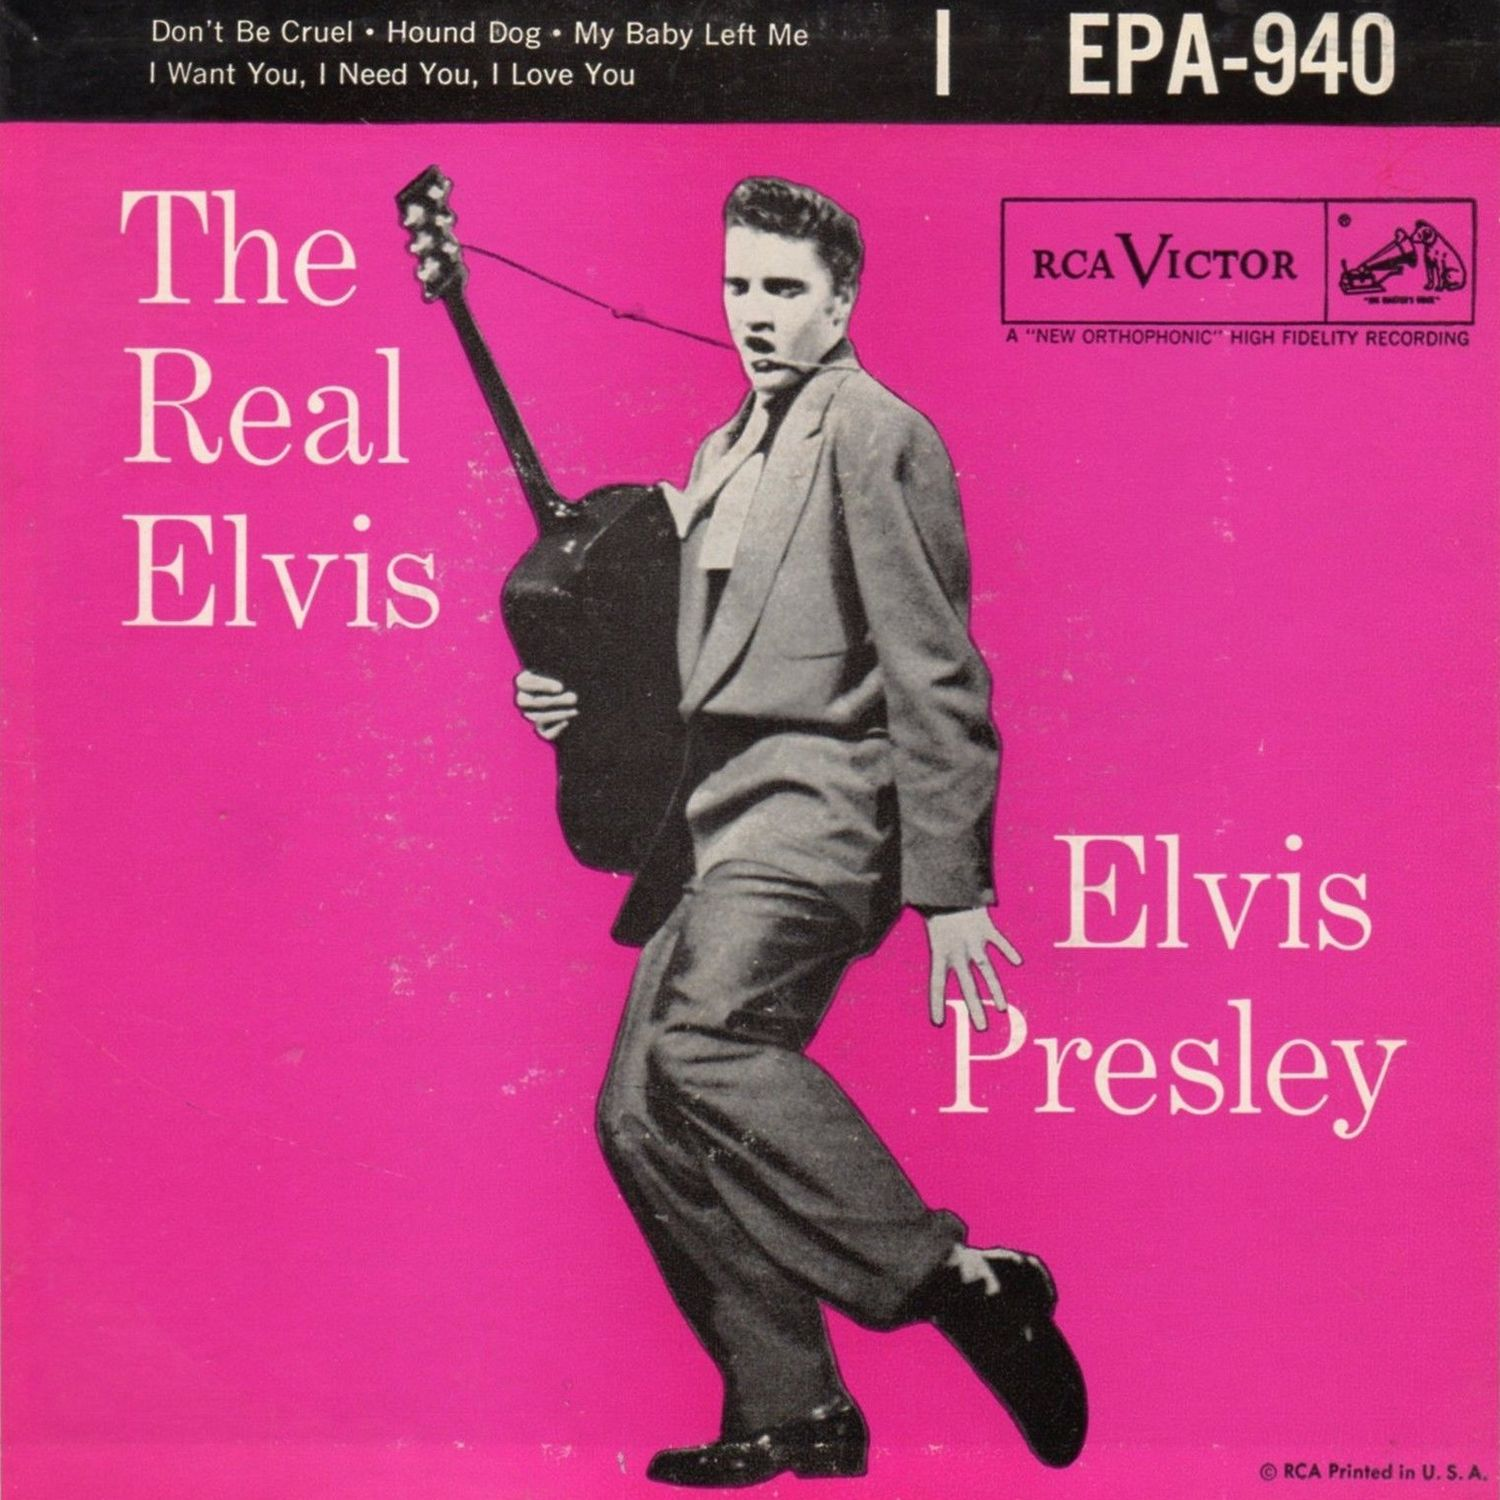 EPA-940 The Real Elvis A (USA)